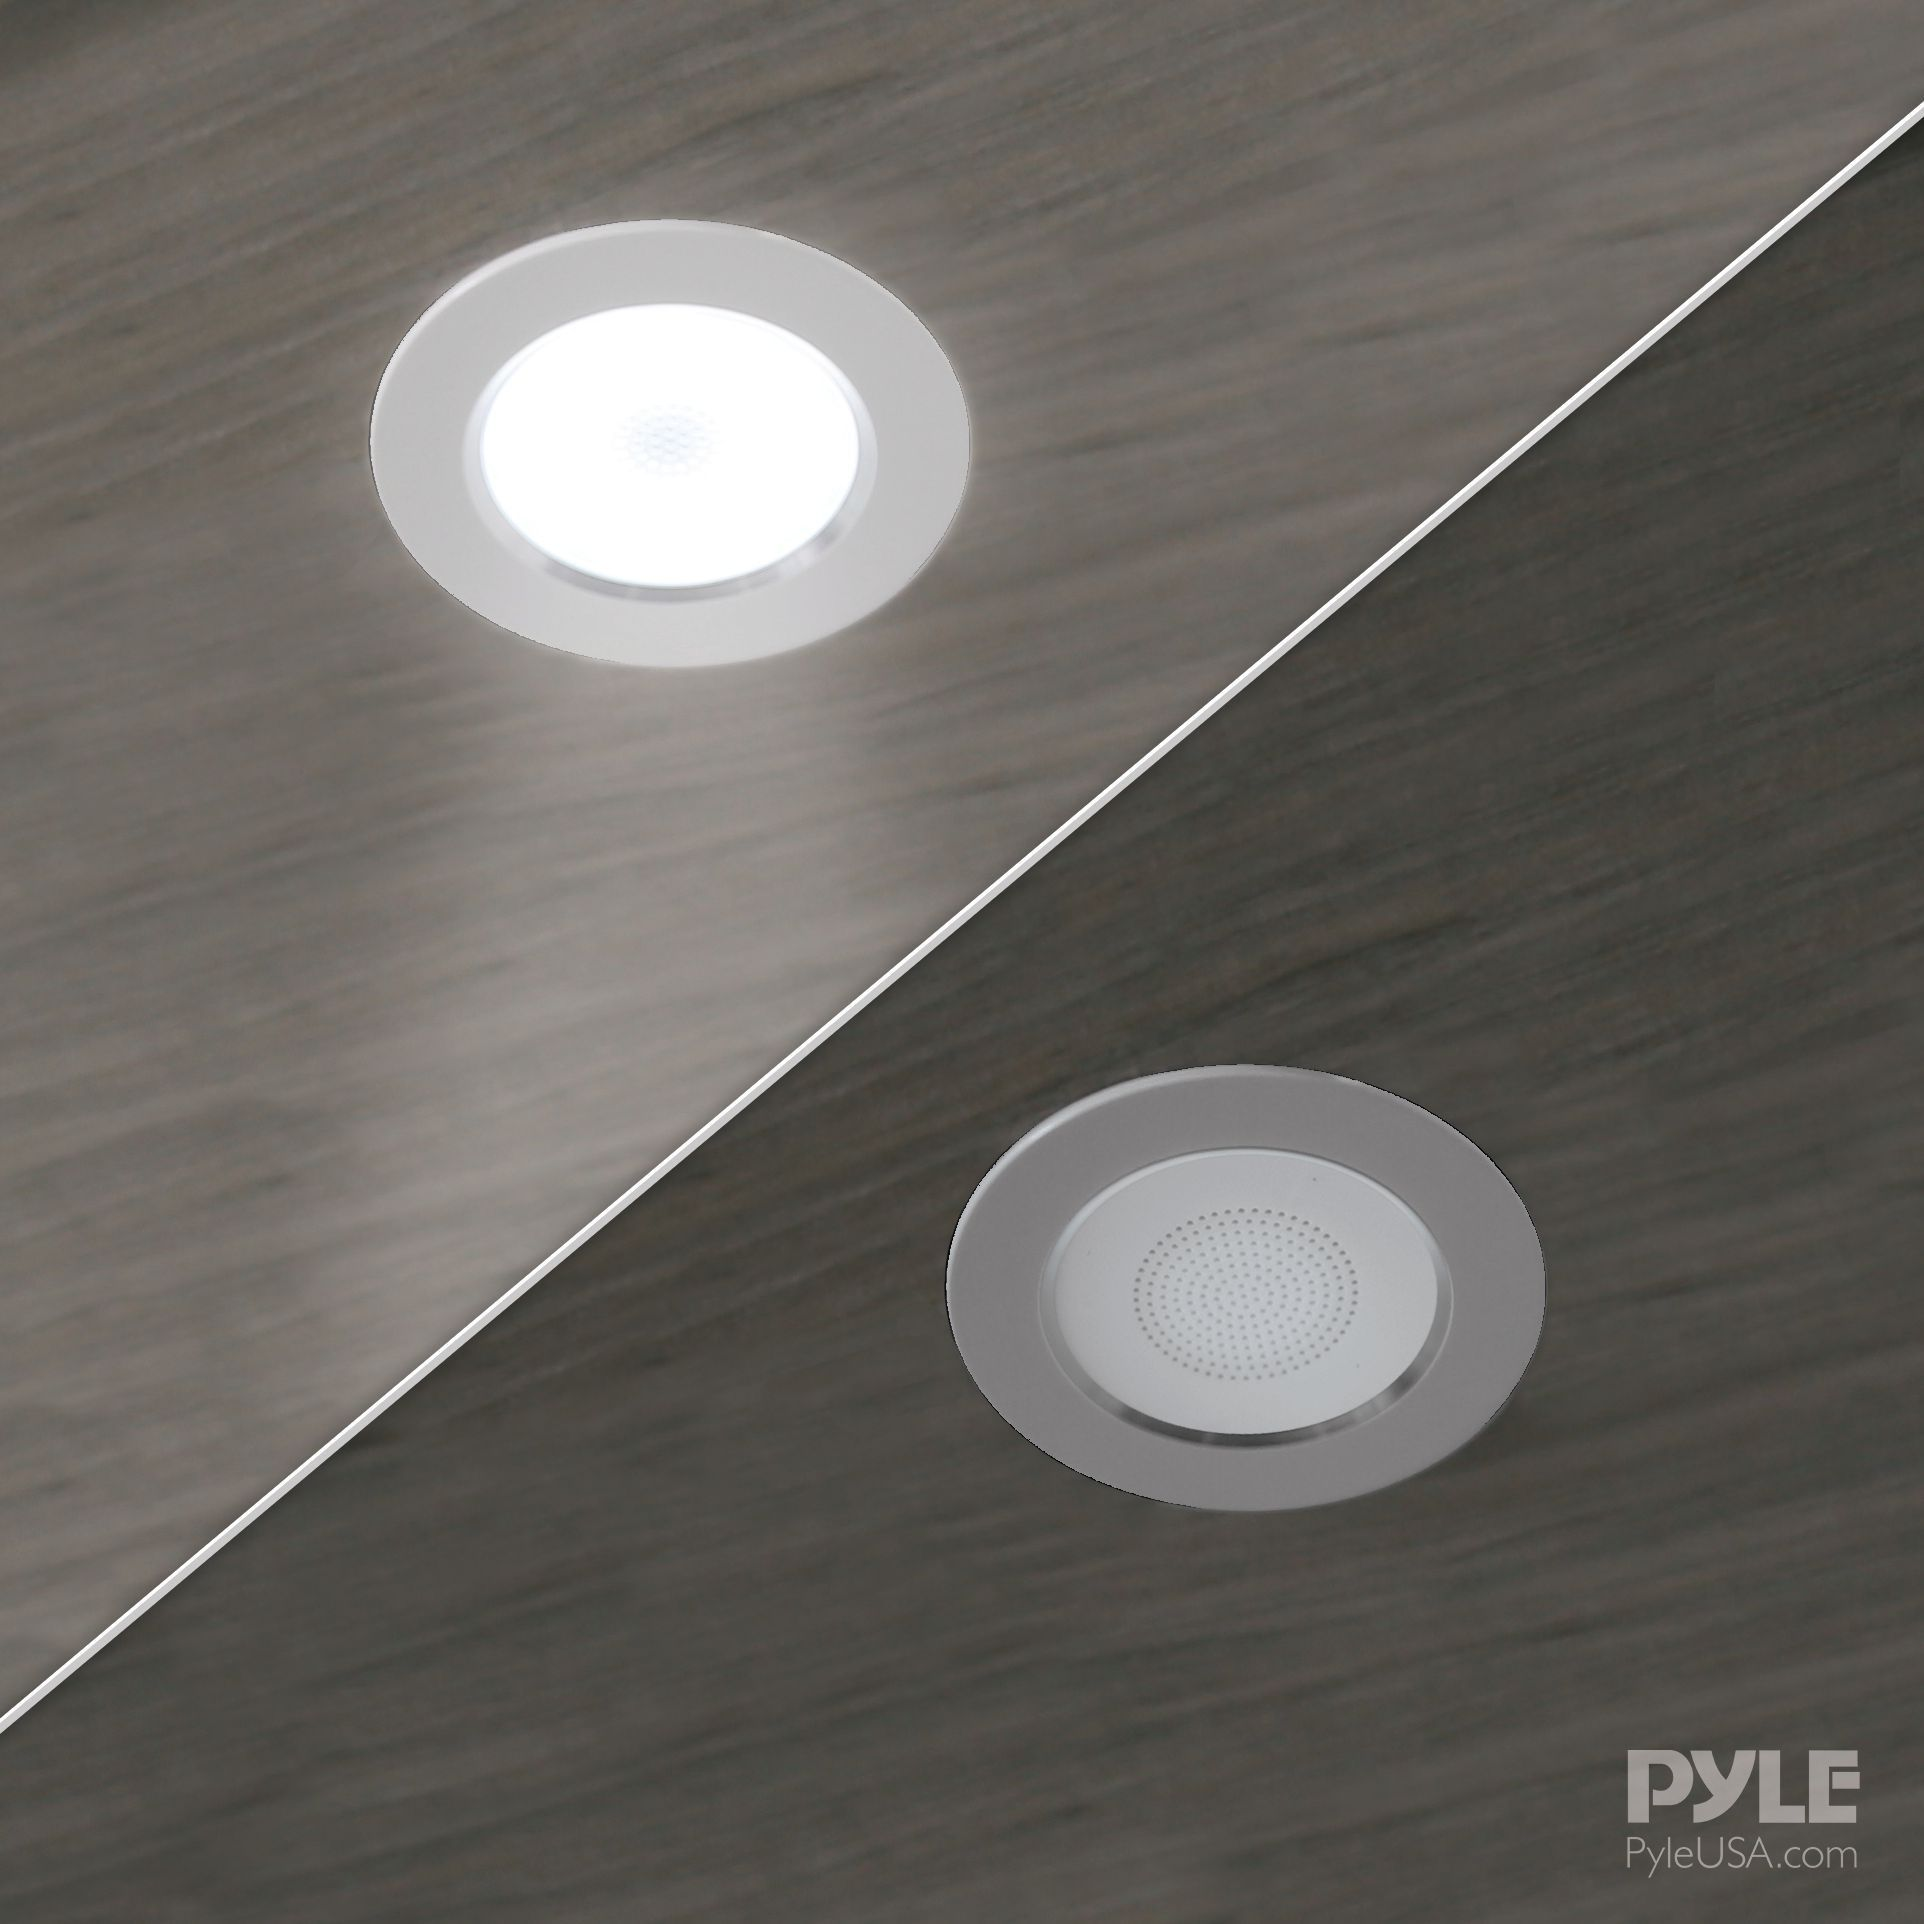 "Pyle Pair of 3.5"" Bluetooth 2-Way Speaker System, In-wall/Ceiling, 650 Lumen LED Lights, (PDICBTL35)"